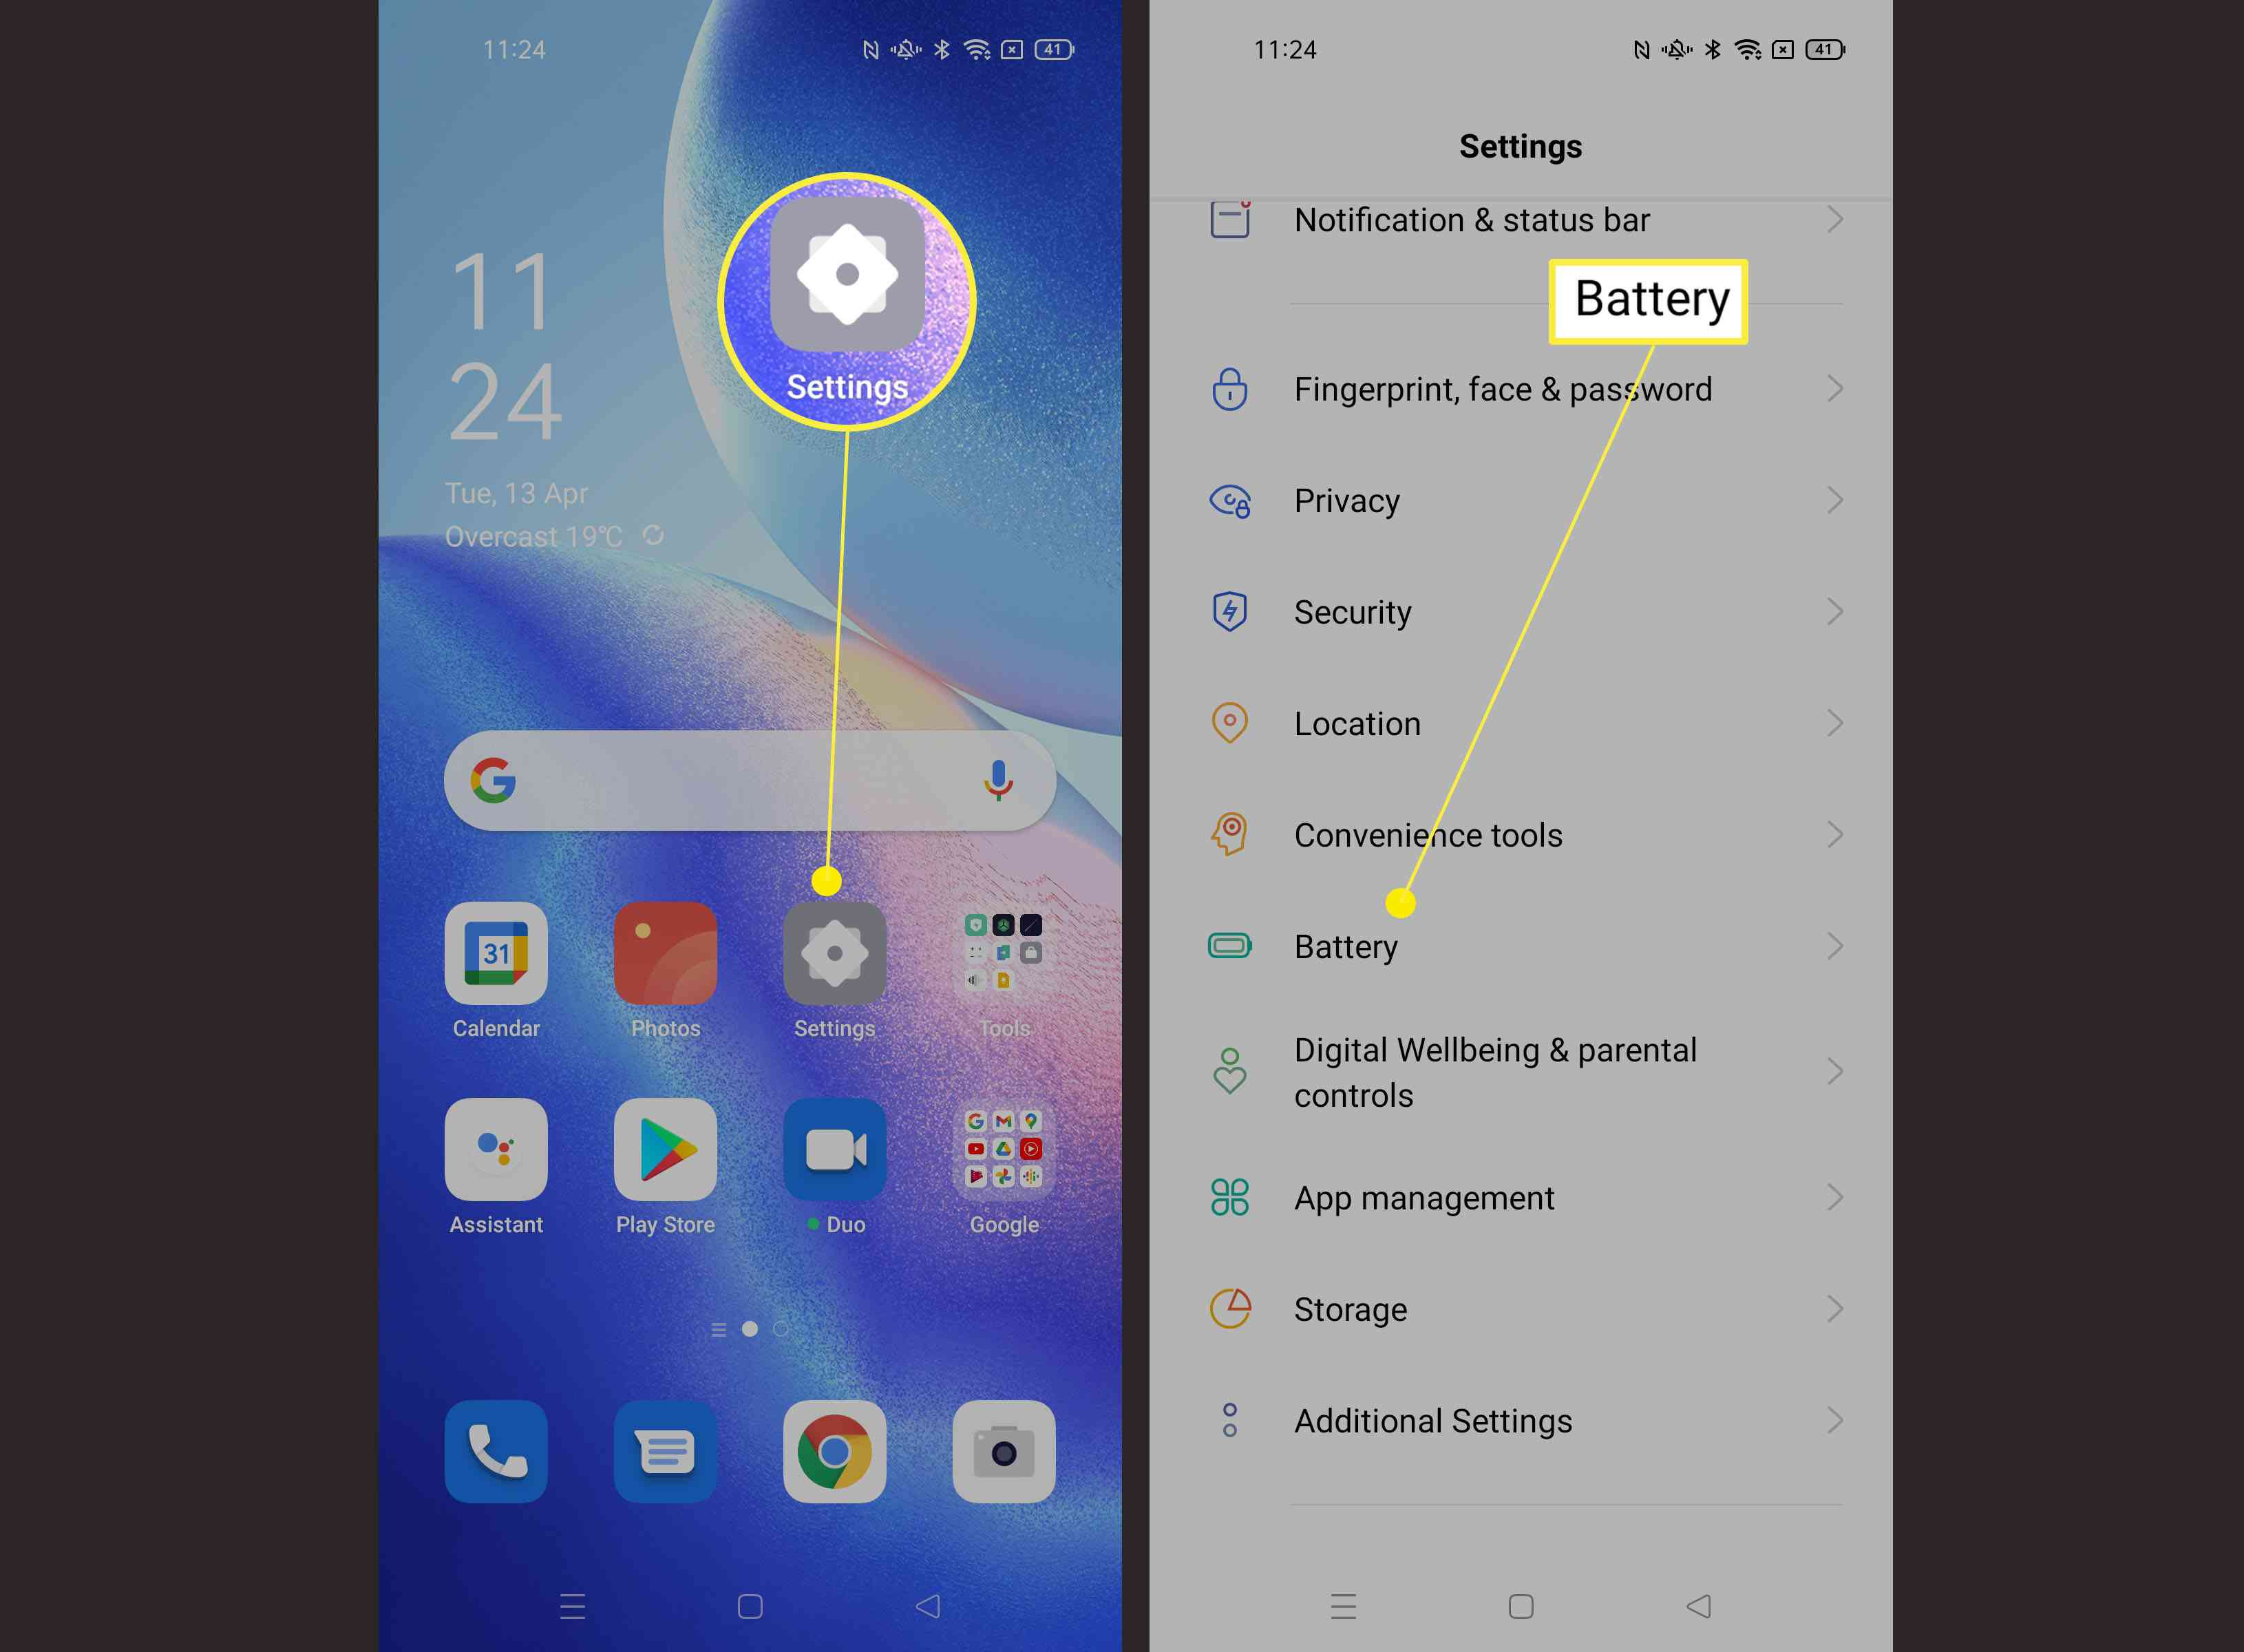 Steps required to find Battery Settings on Android